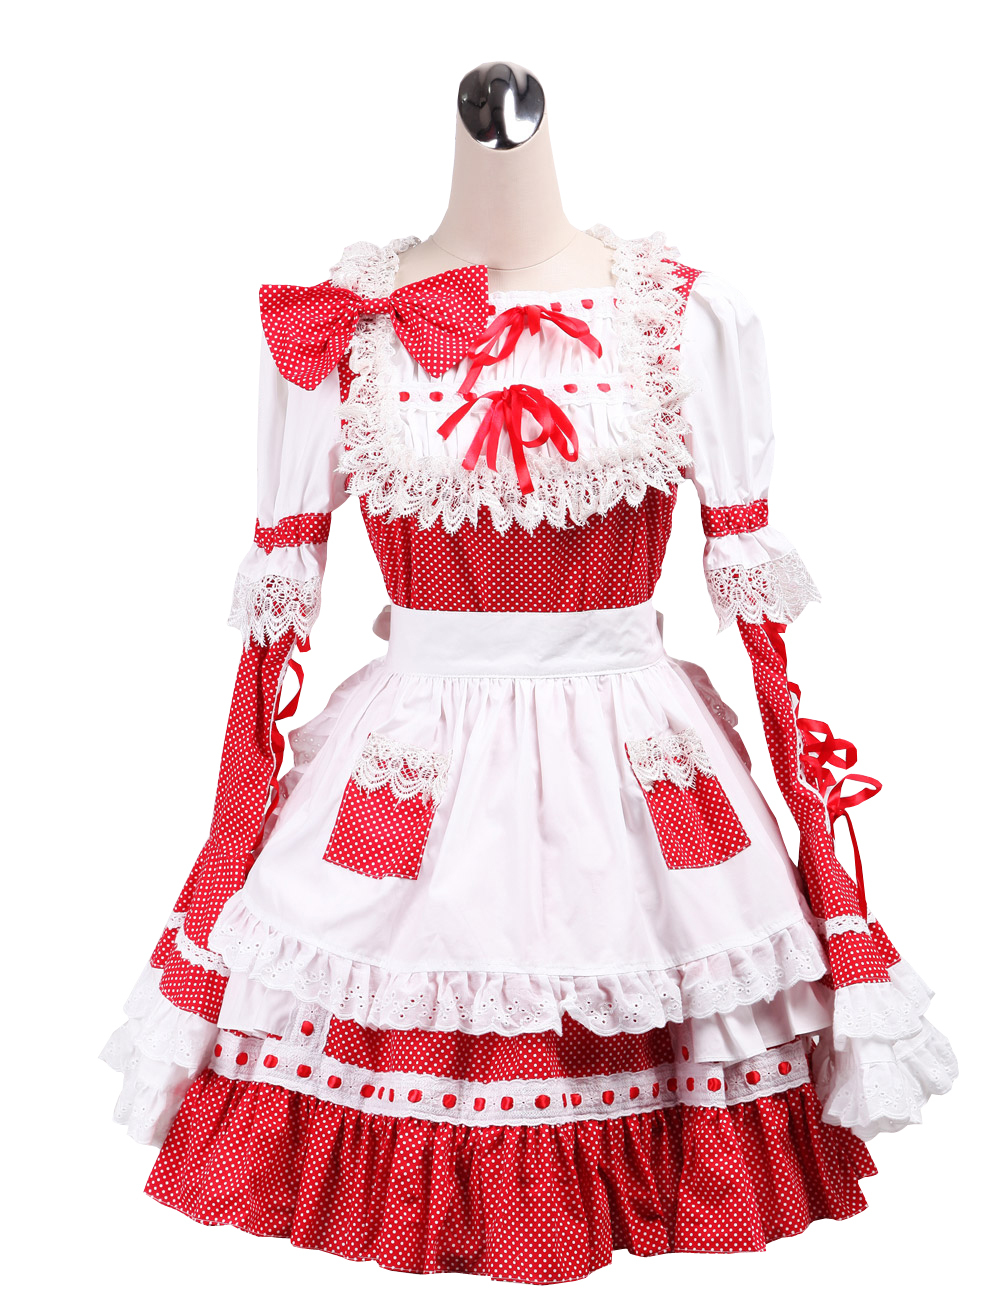 Primary image for ZeroMart Red and White Cotton Bow Ruffles Maid Cosplay Victorian Lolita Dress